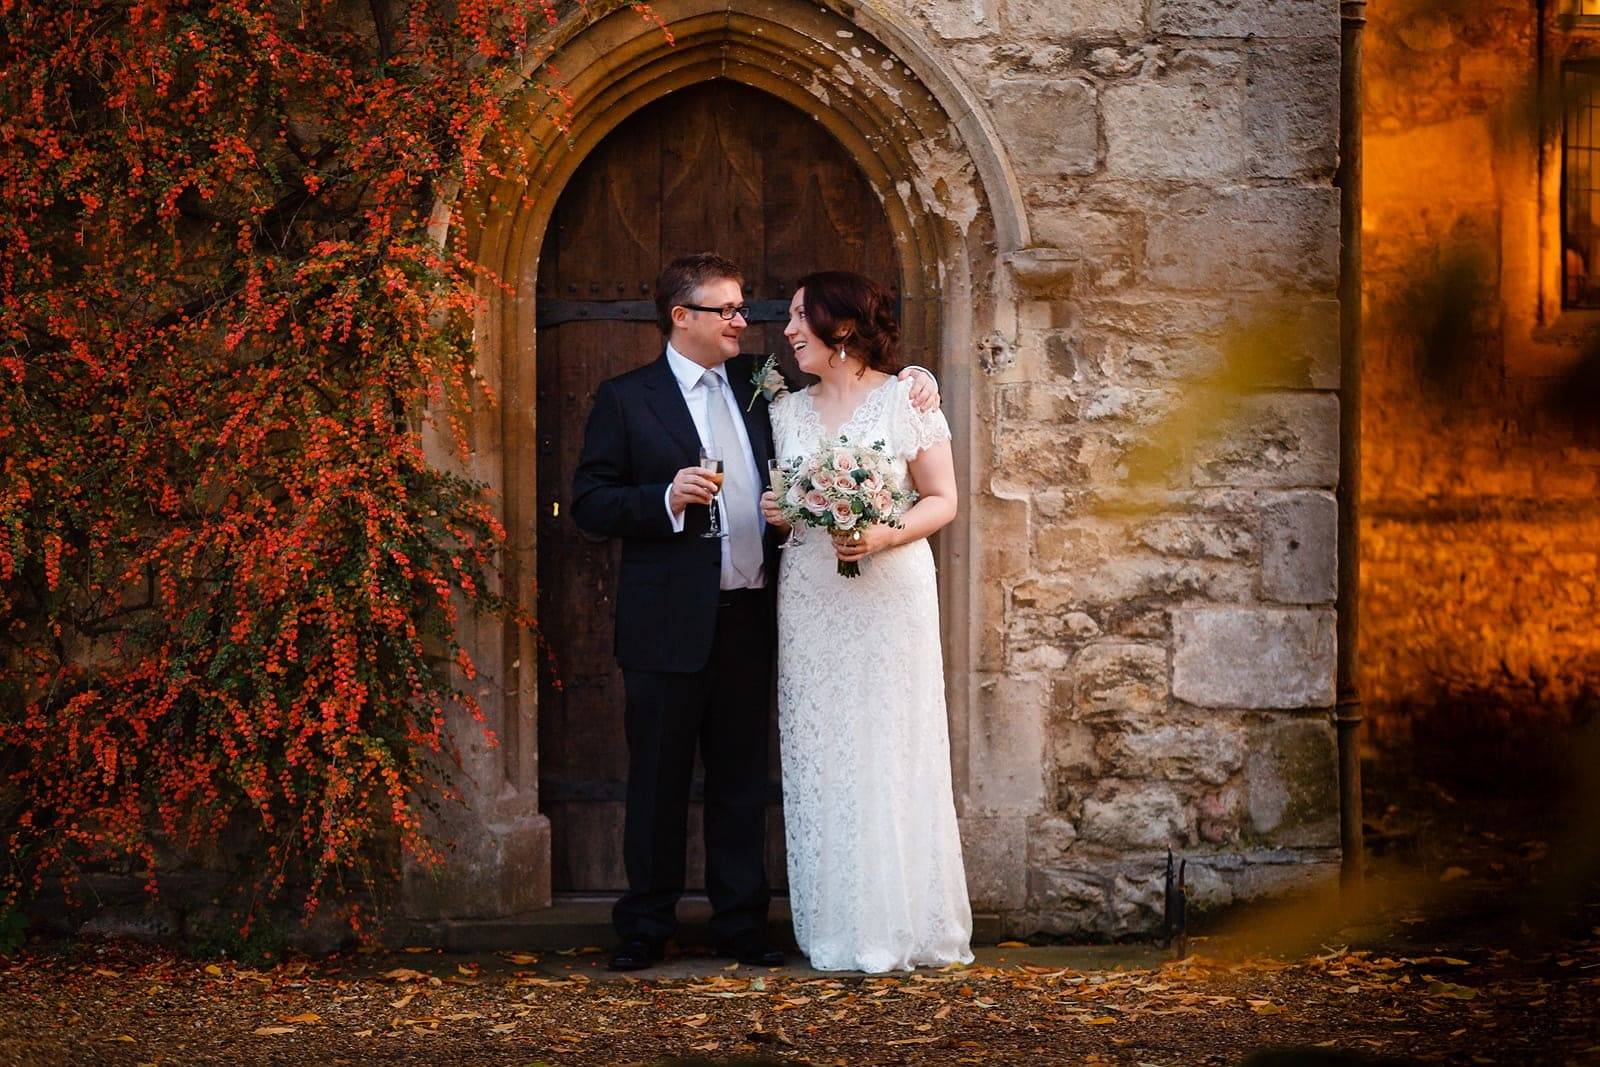 Notley Abbey wedding photography | Just One